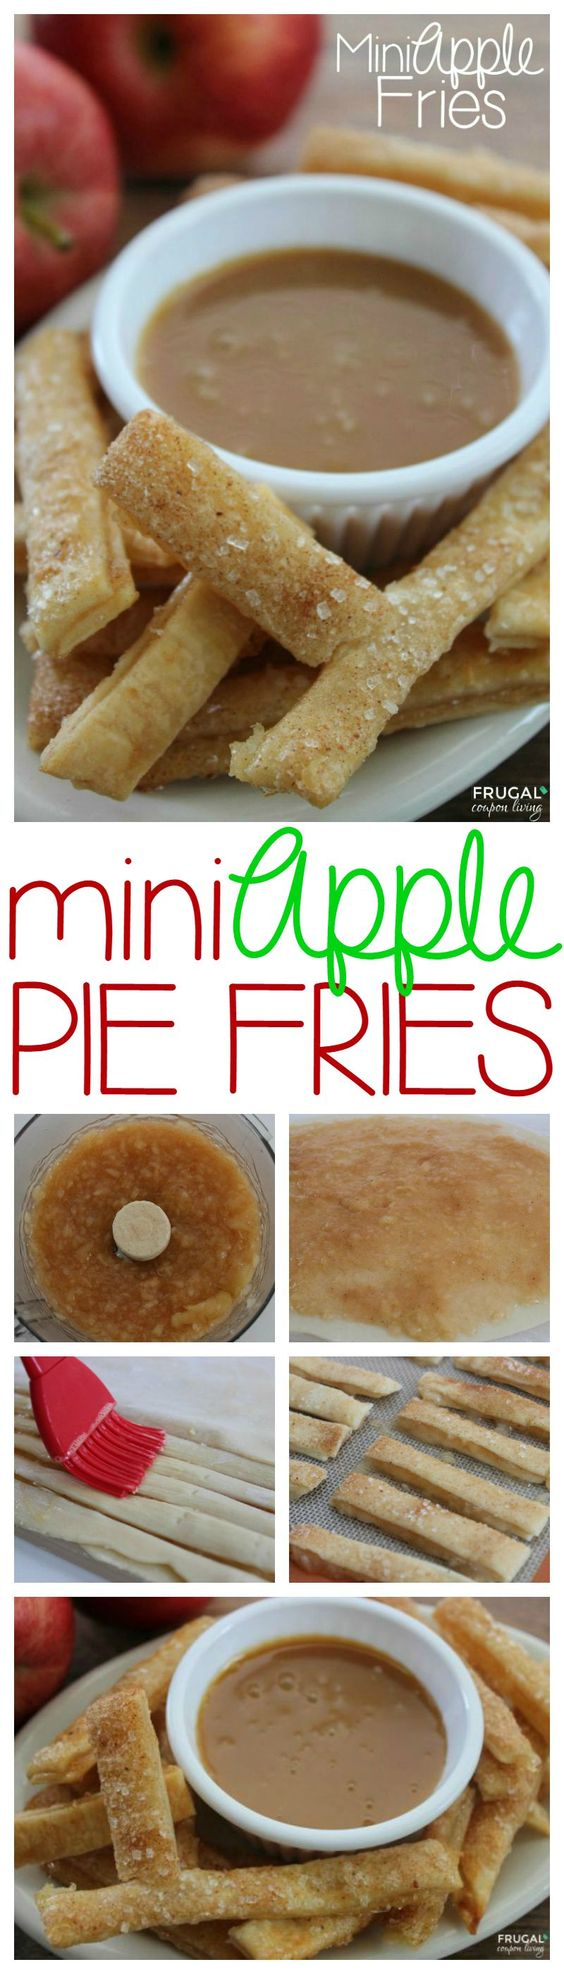 Homemade Apple Fries – Mini Apple Pie Sticks. These are great for a treat but also consider for a Fall Party Idea or After School Snack for the Kids. Apple Dessert Recipe on Fugal Coupon Living.